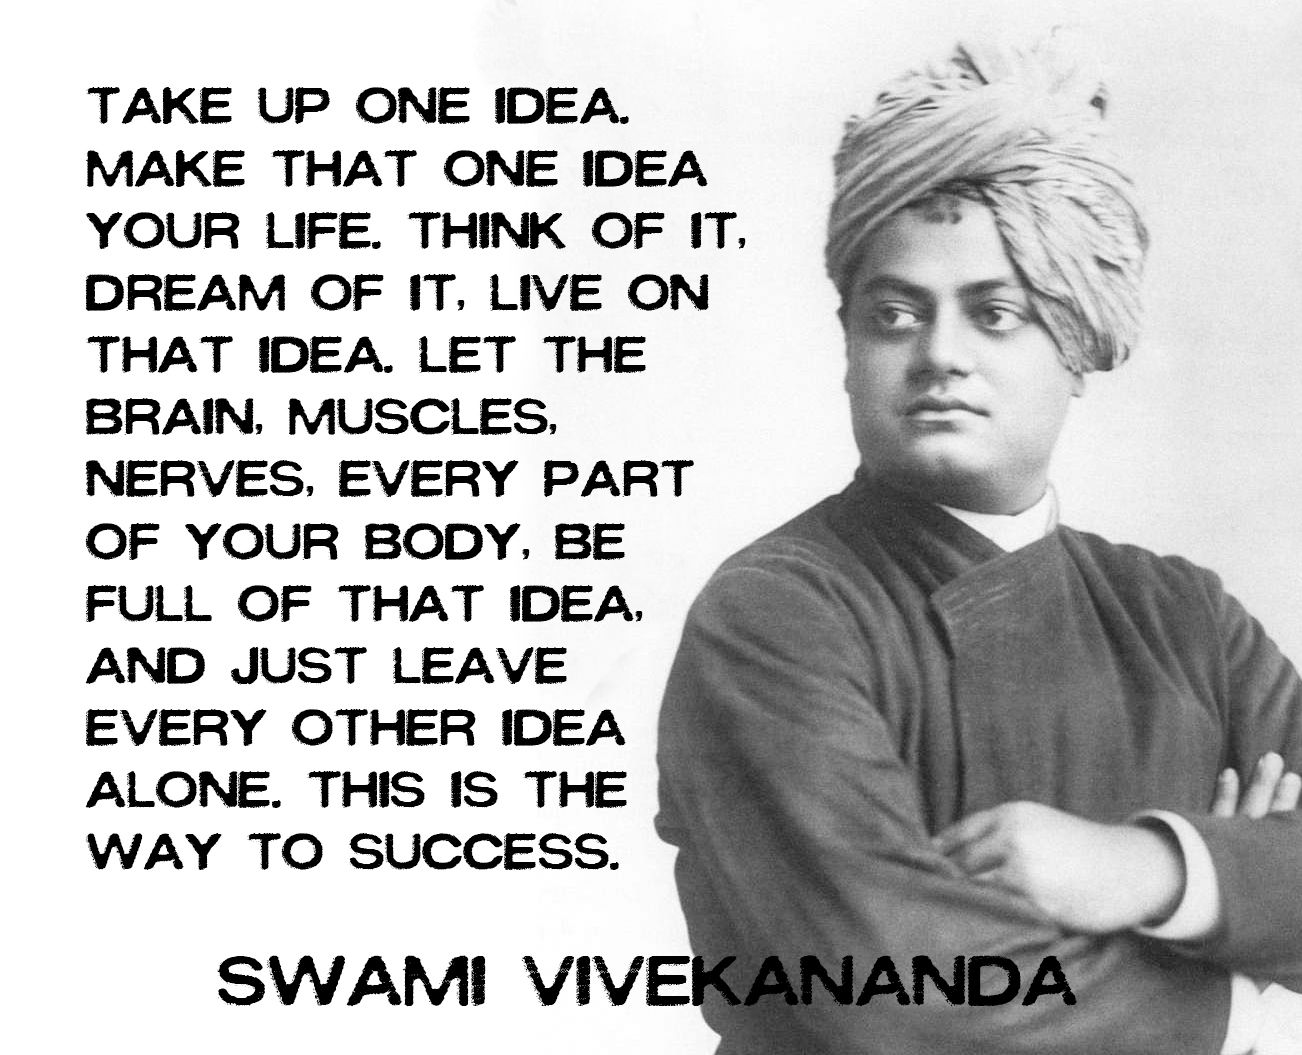 Take Up One Idea Make That One Idea Your Life Swami Vivekananda